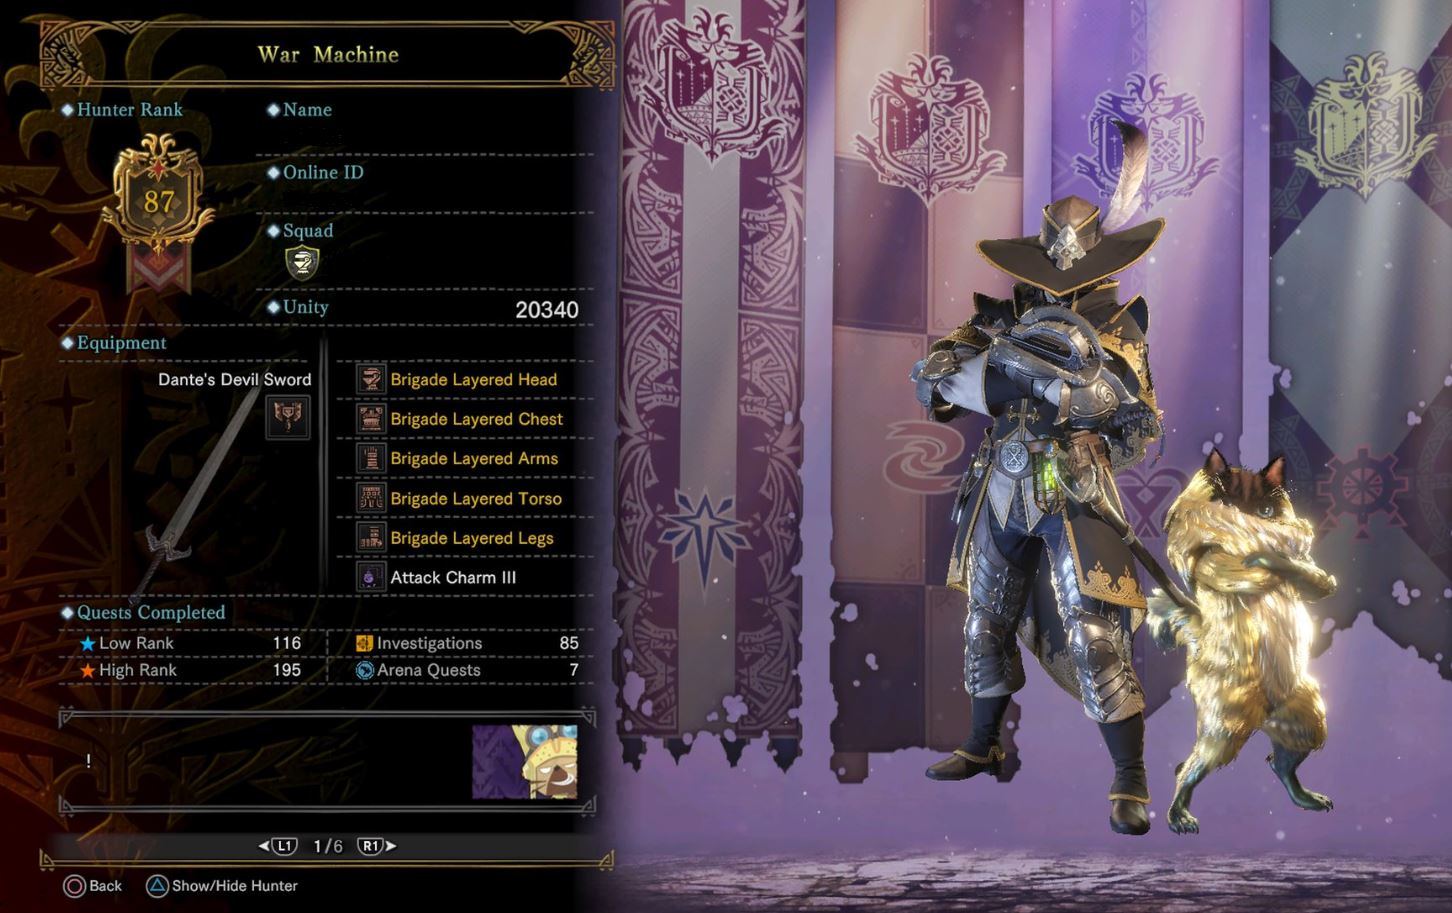 How To Get The Brigade Layered Armor In Monster Hunter Worlds